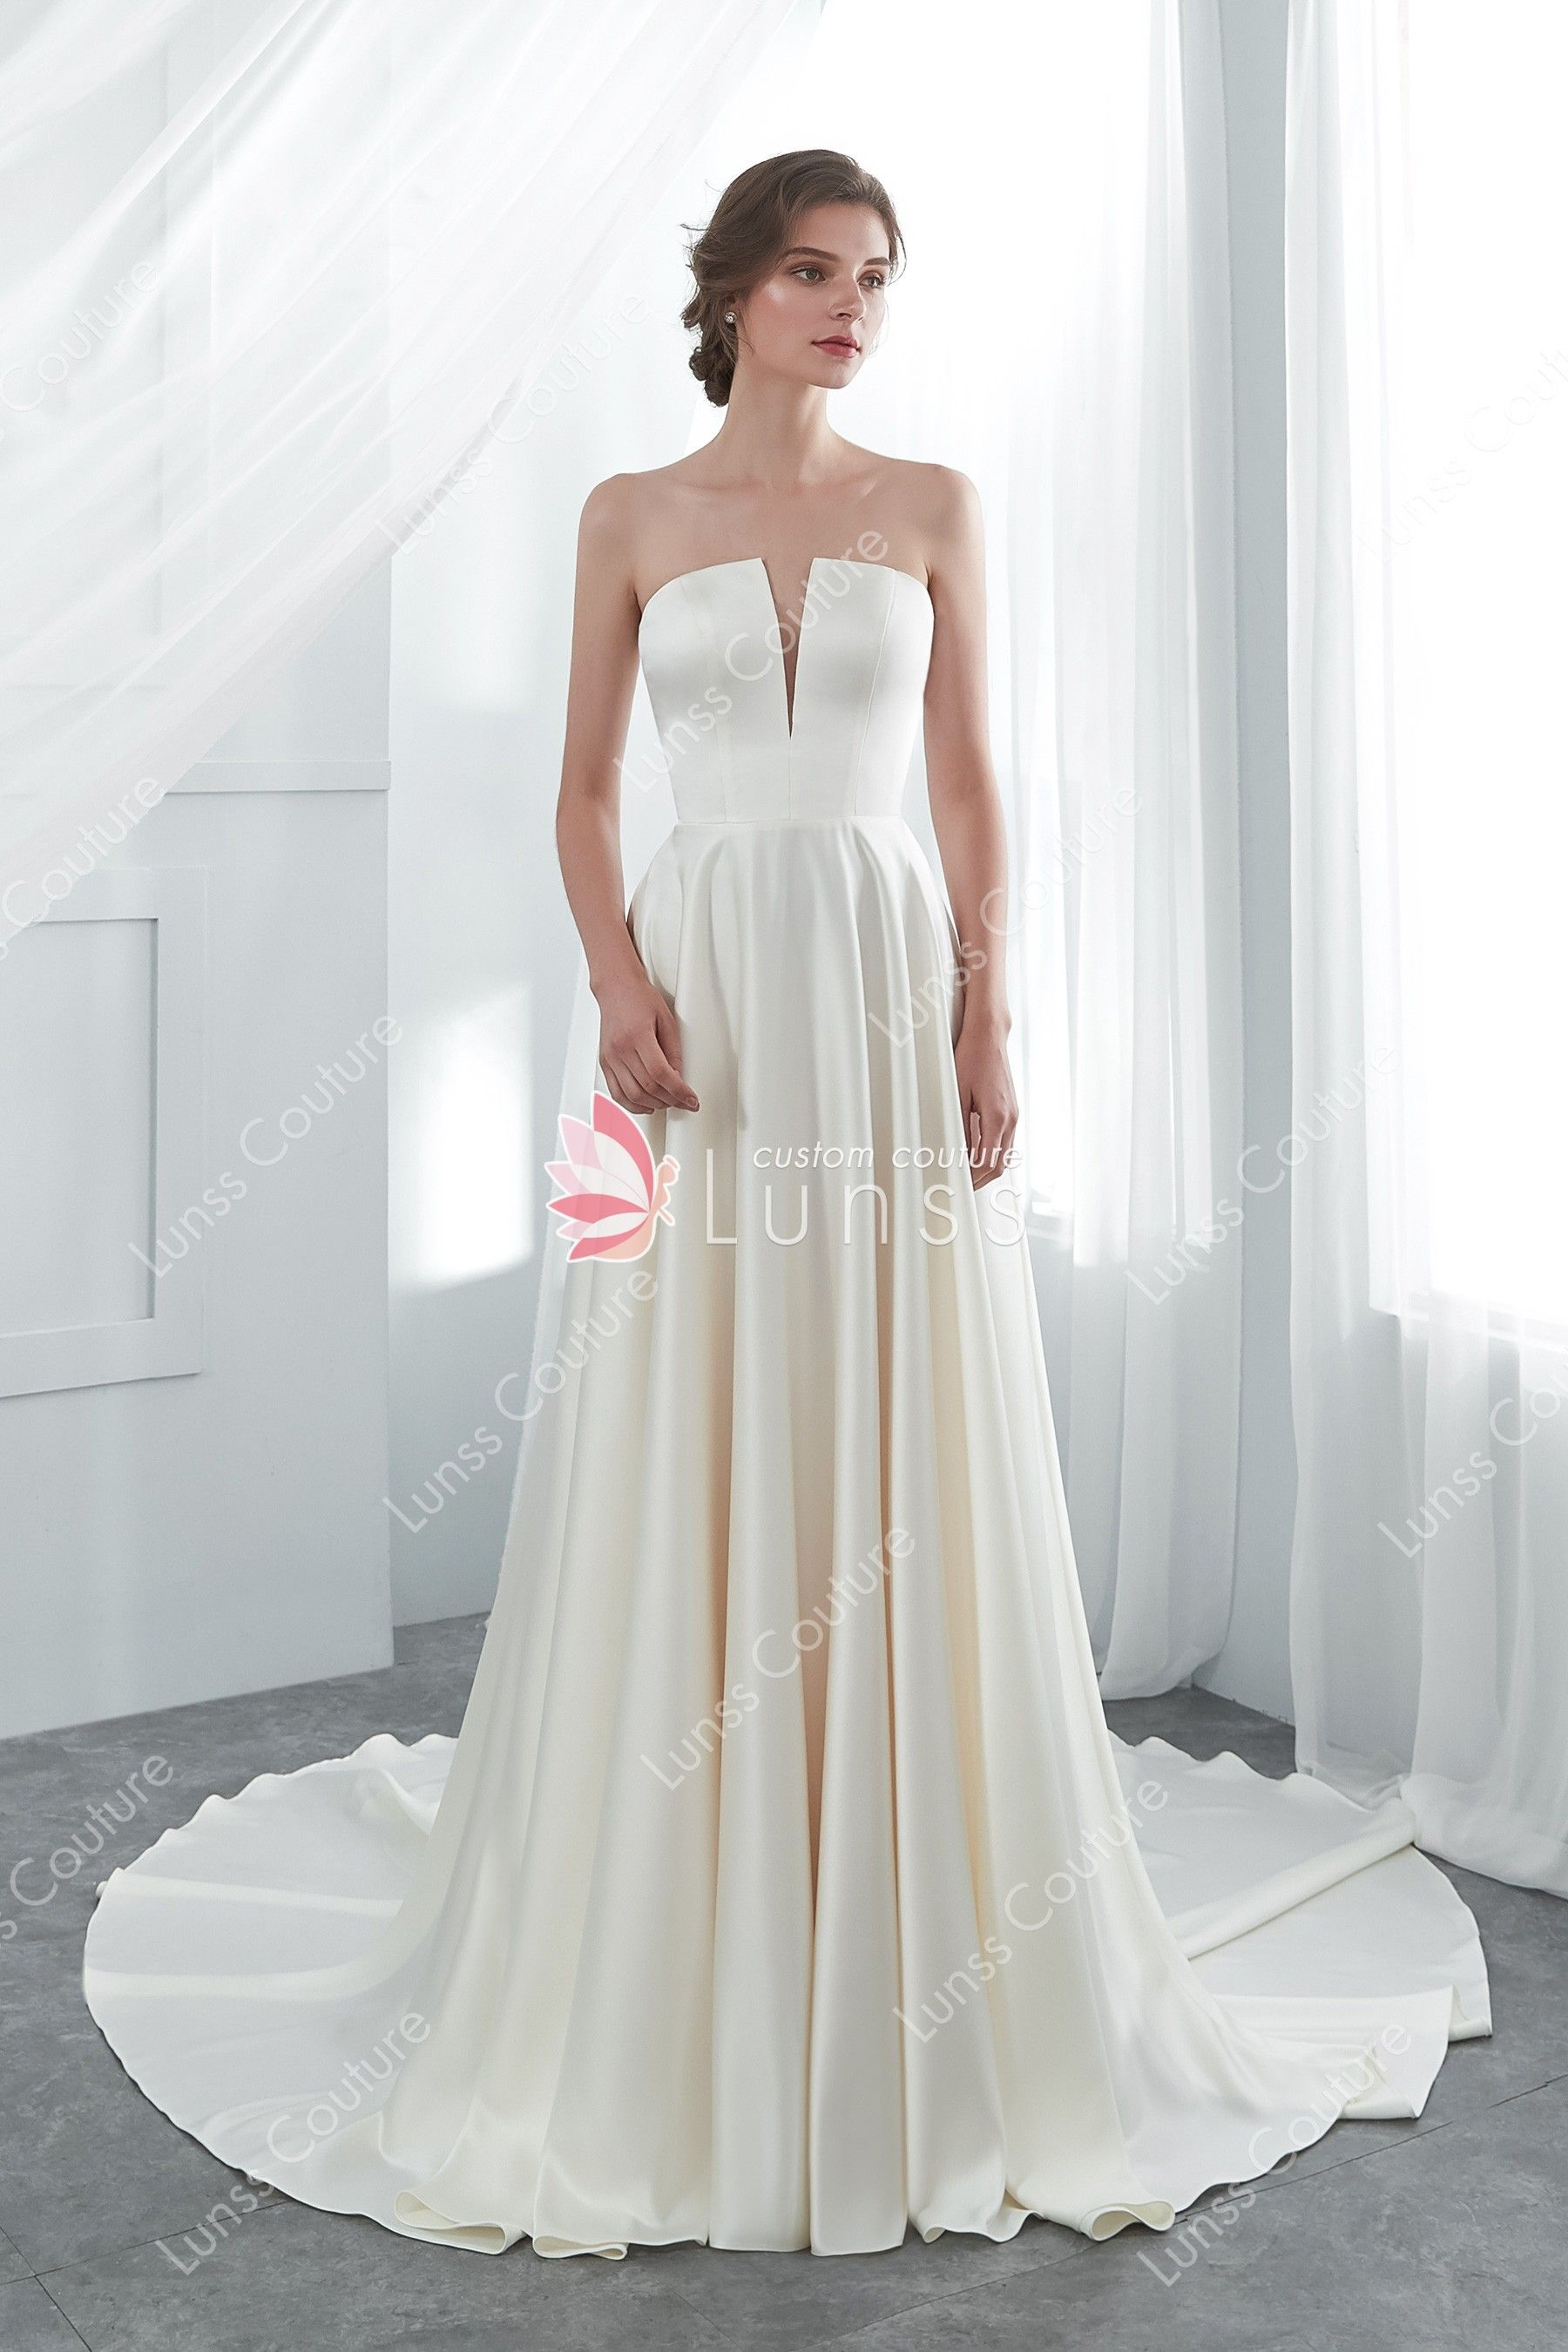 90377fca1b7 Cream Classic Strapless Long High End Satin Wedding Gown - Lunss Couture